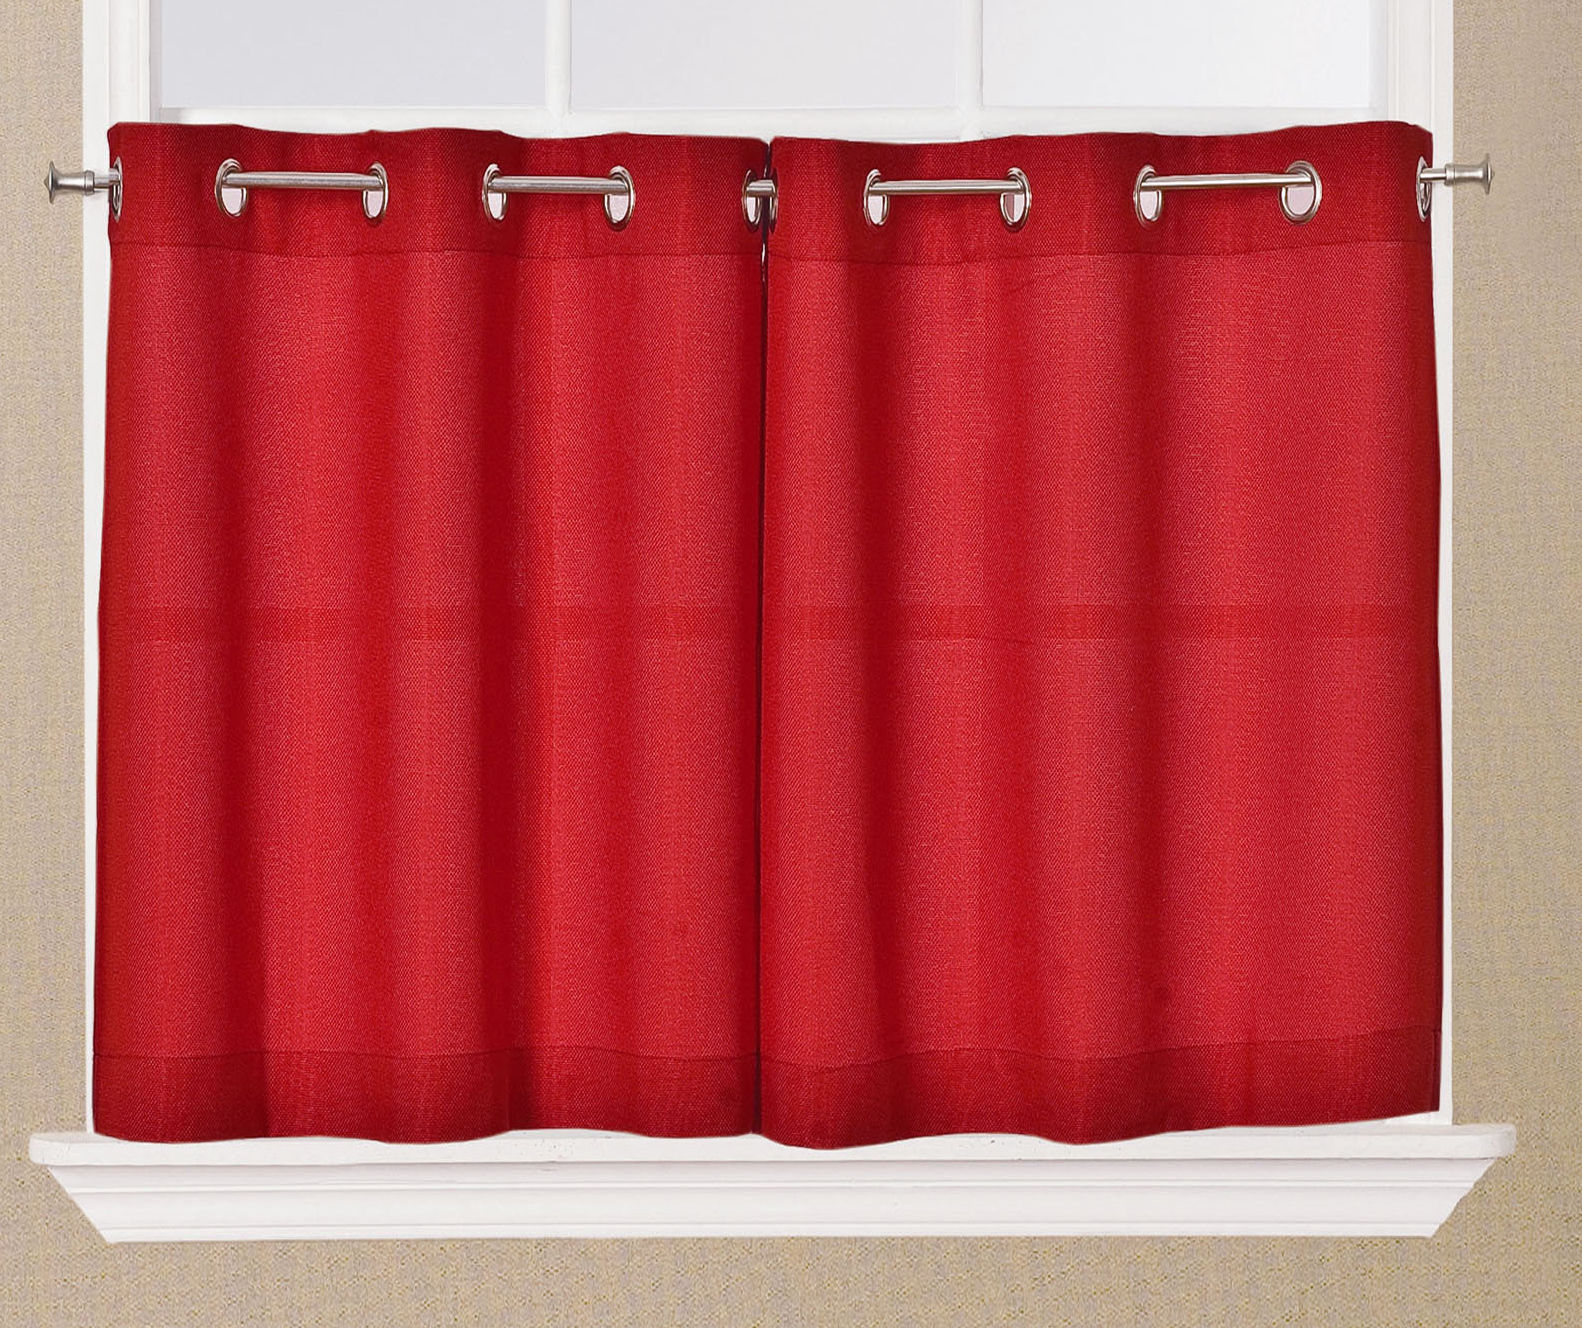 Jackson Textured Solid Red Kitchen Curtain Choice Tiers Or Valance Curtains Drapes Valances